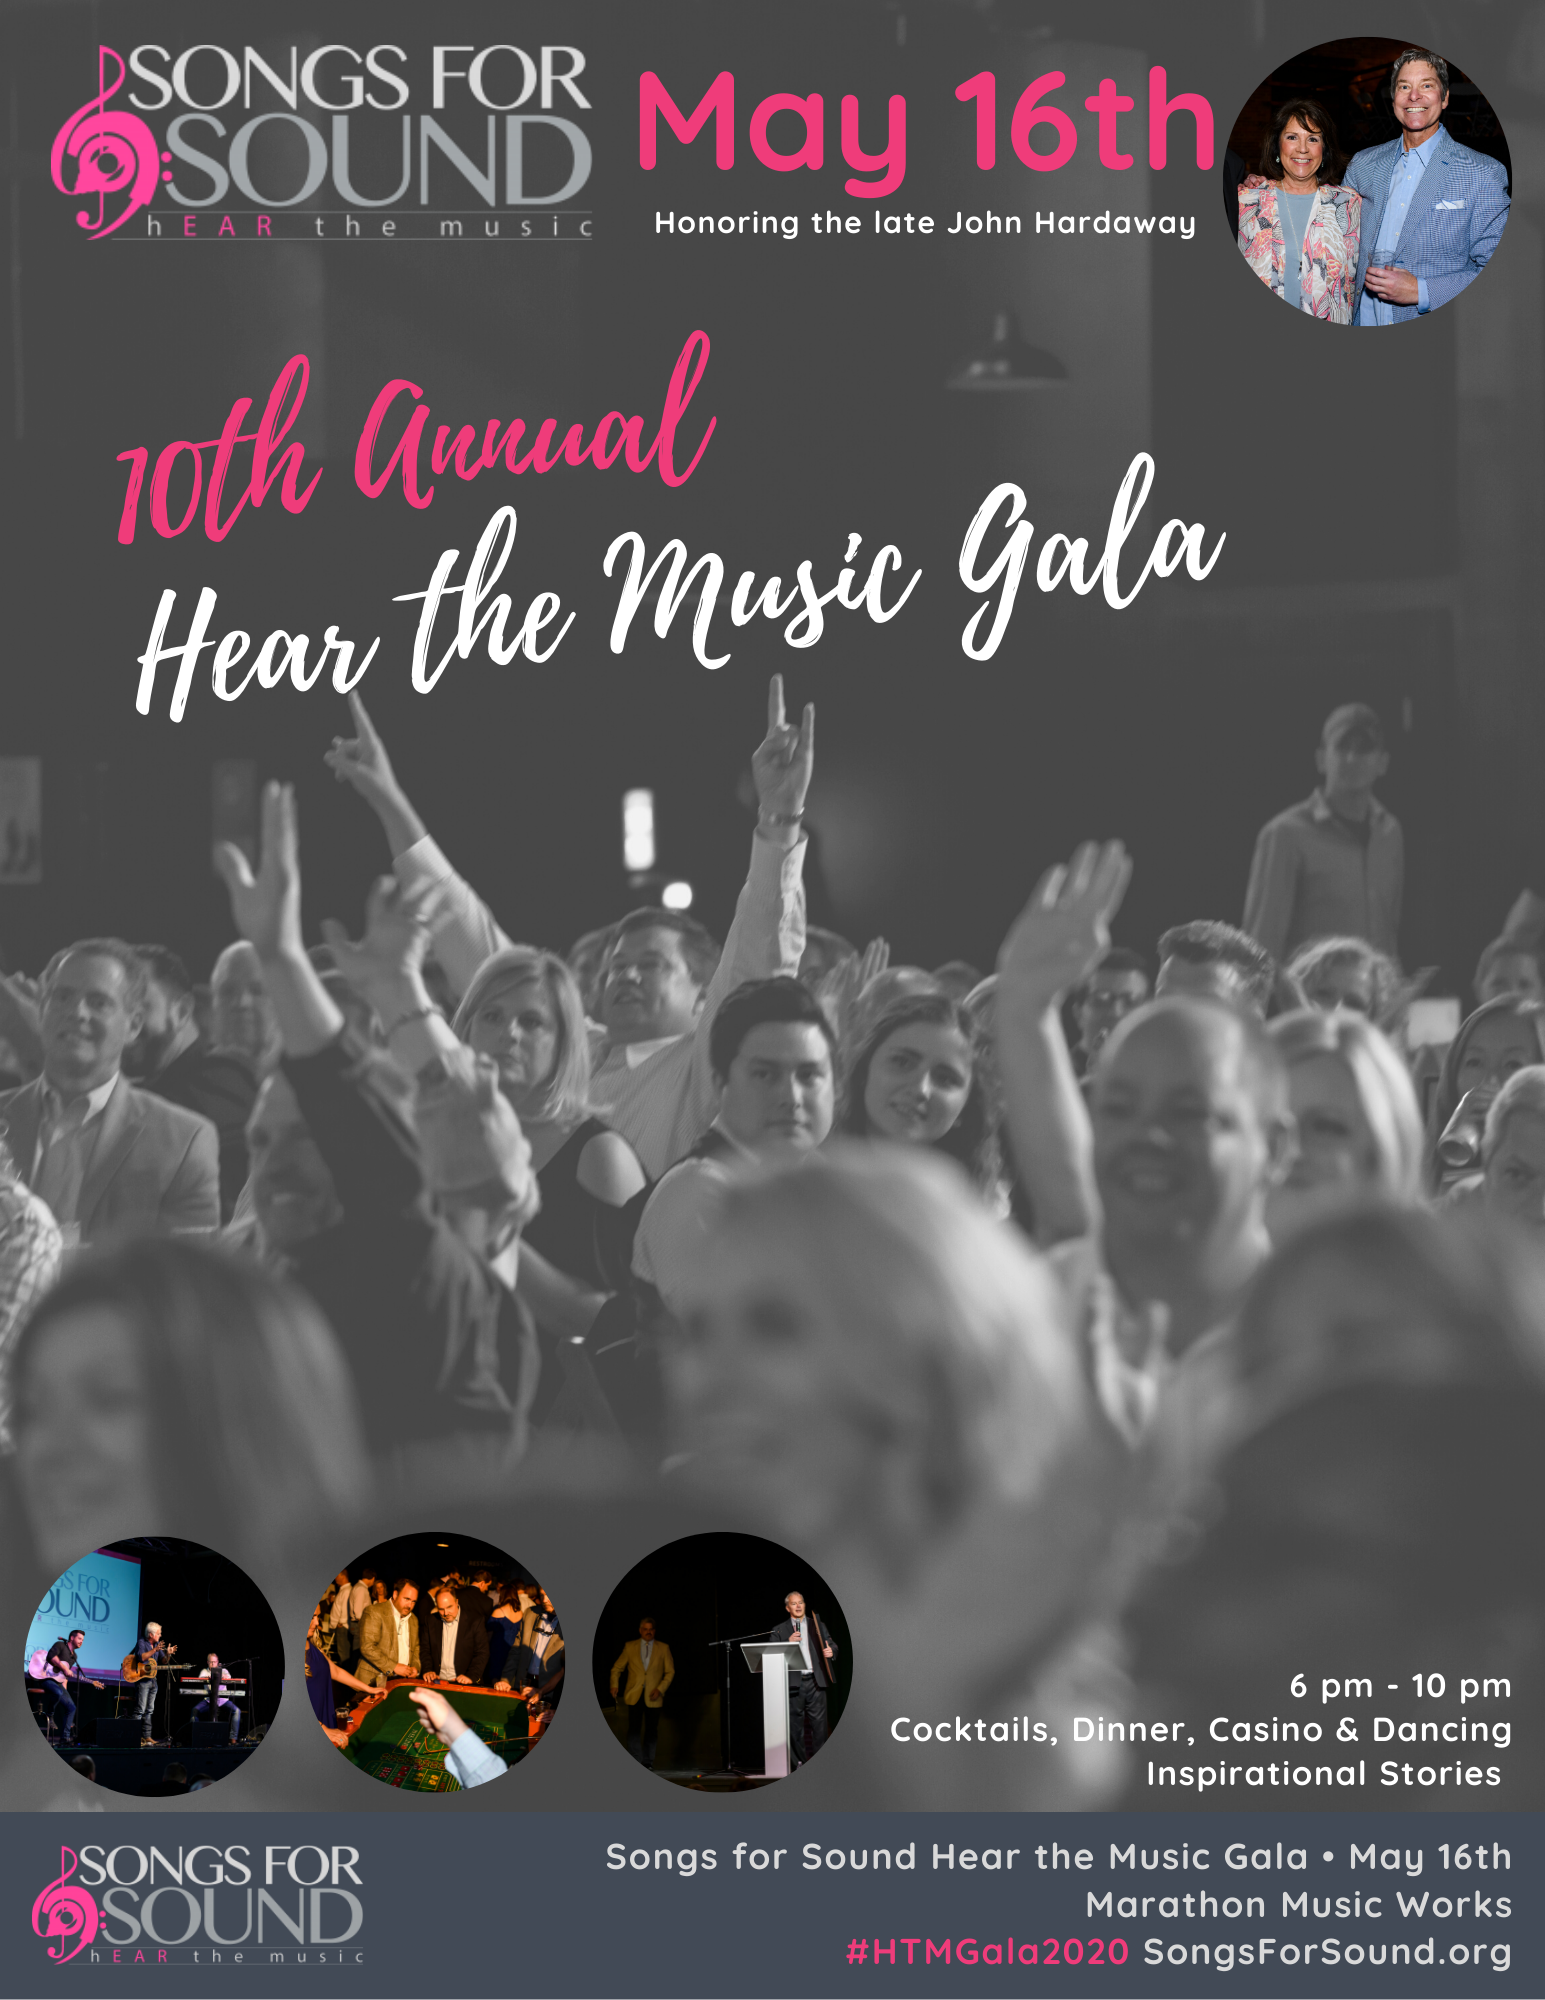 2020 Hear the Music Gala Sponsorship - Be an Event Sponsor